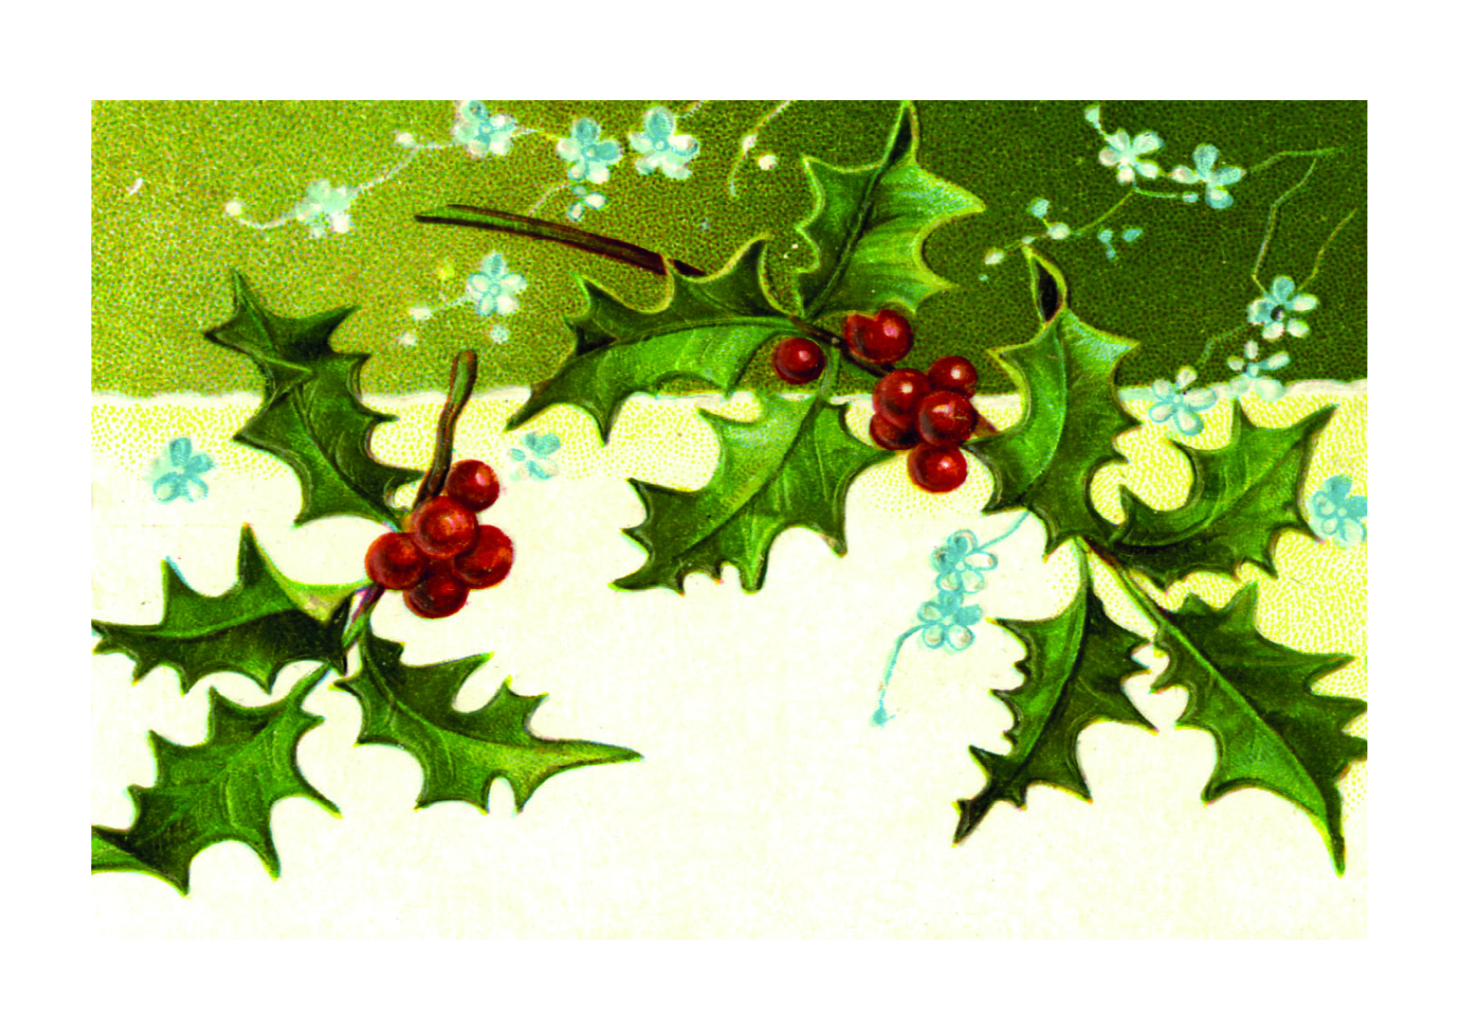 1718-01785 Record Office Xmas Card 4 Holly Card.jpg